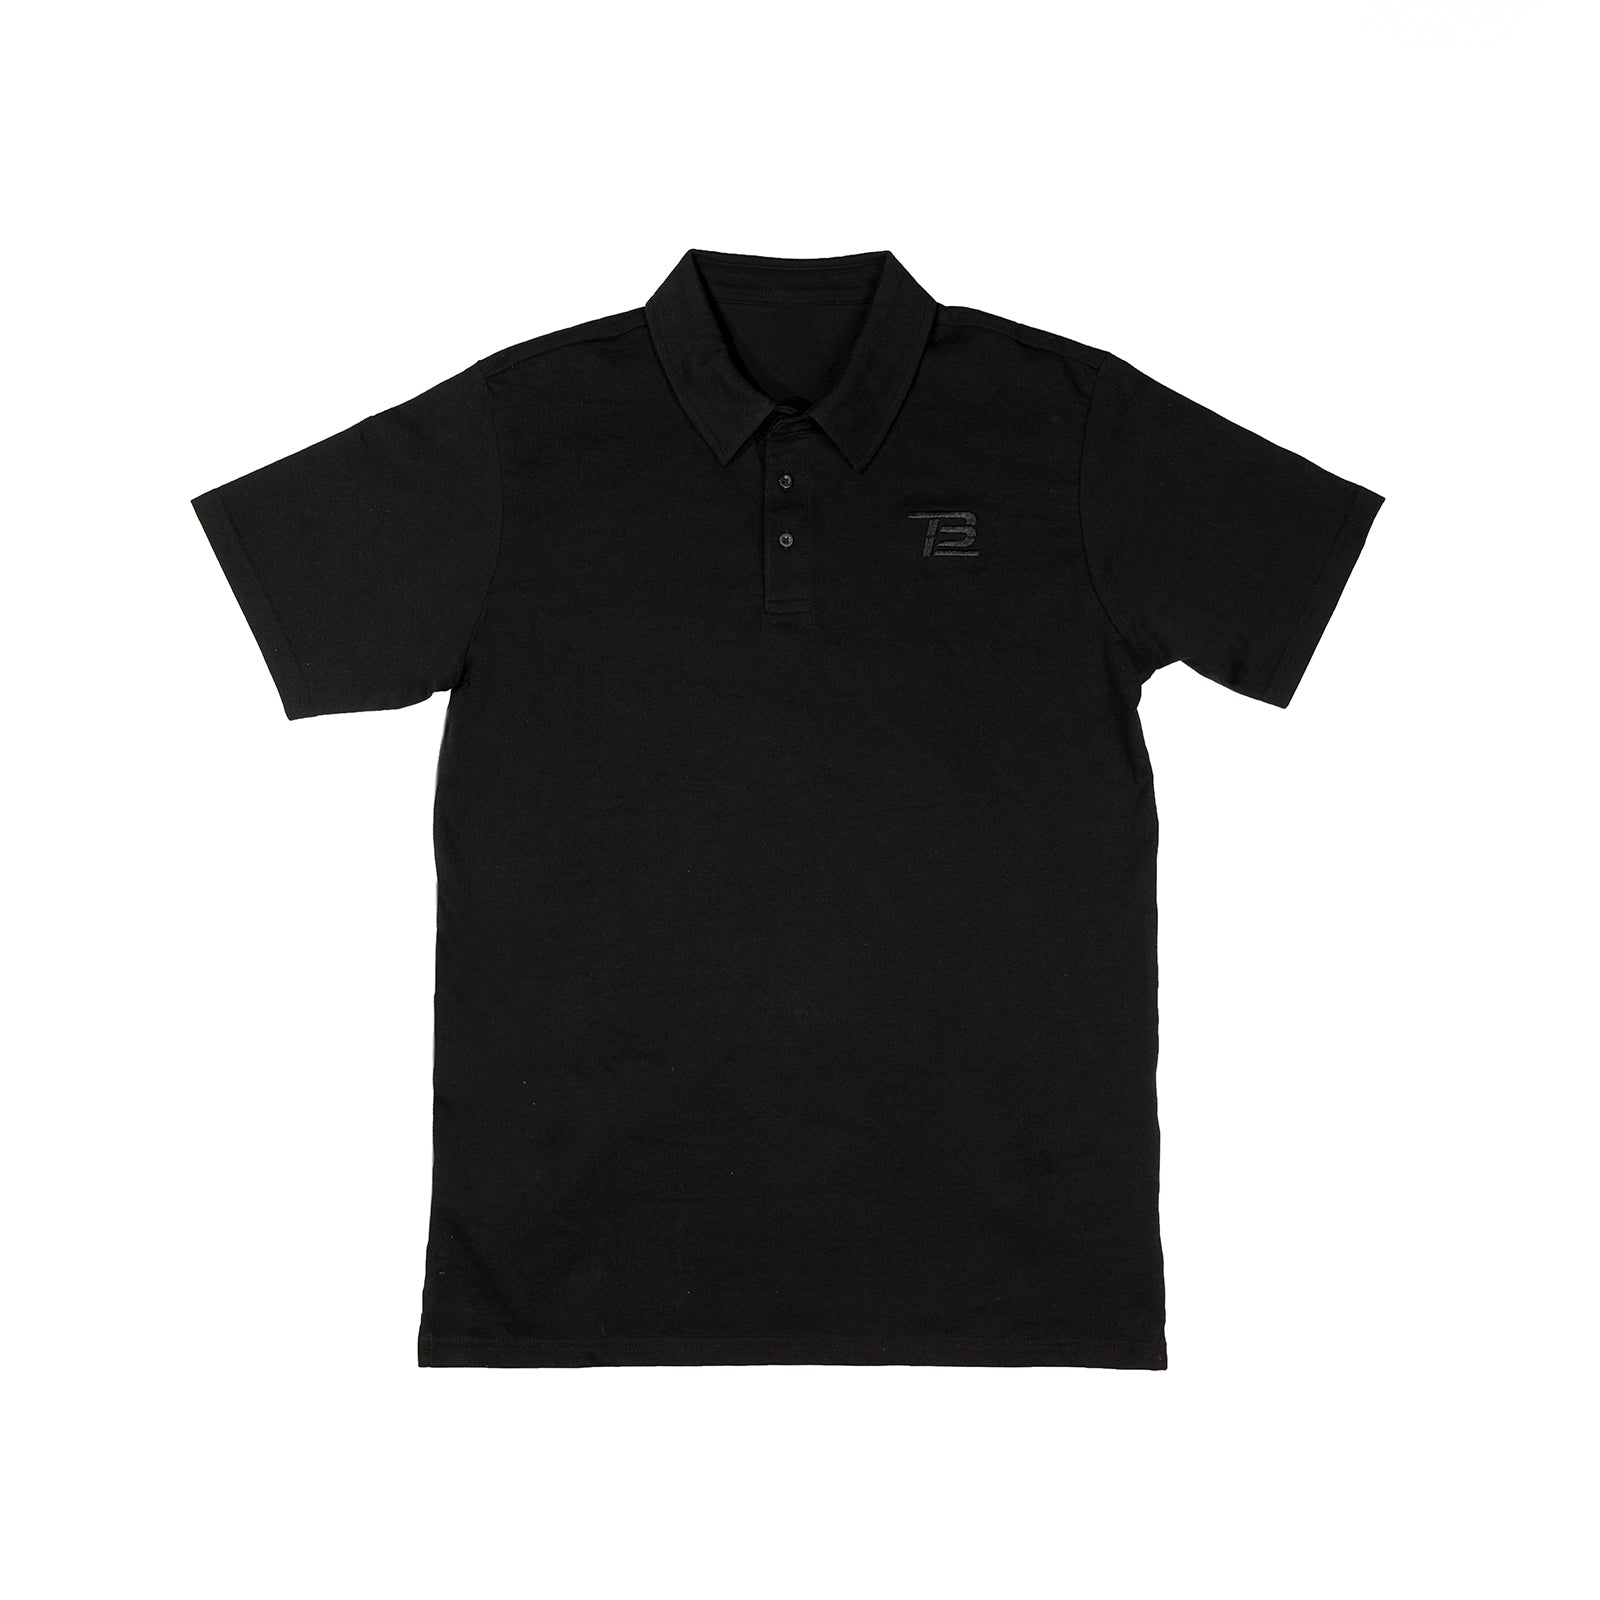 TB12 Polo Shirt - Black